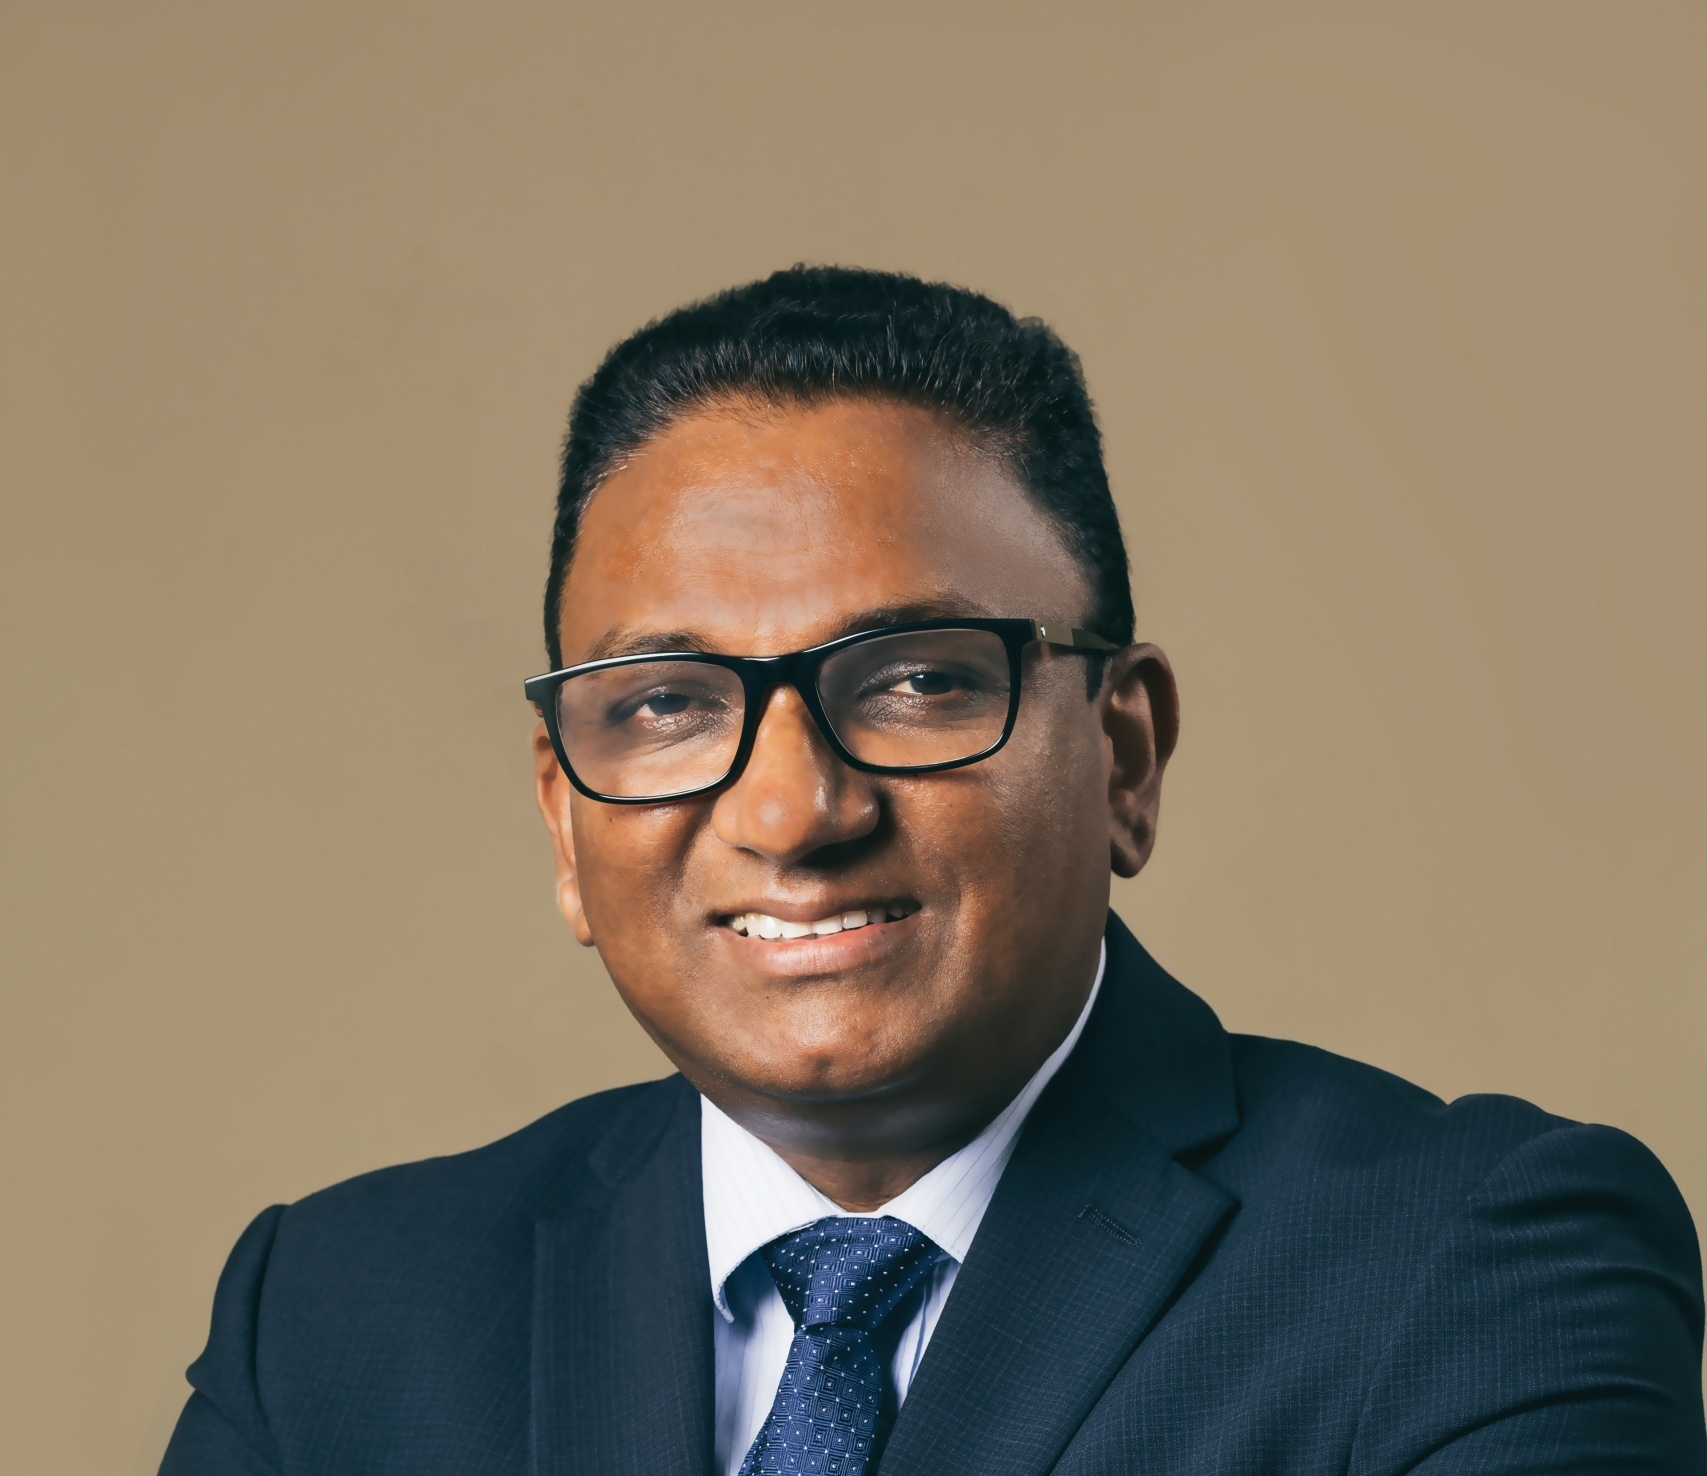 A Gentleman with a Vision – Kiththi Perera, CEO of SLT